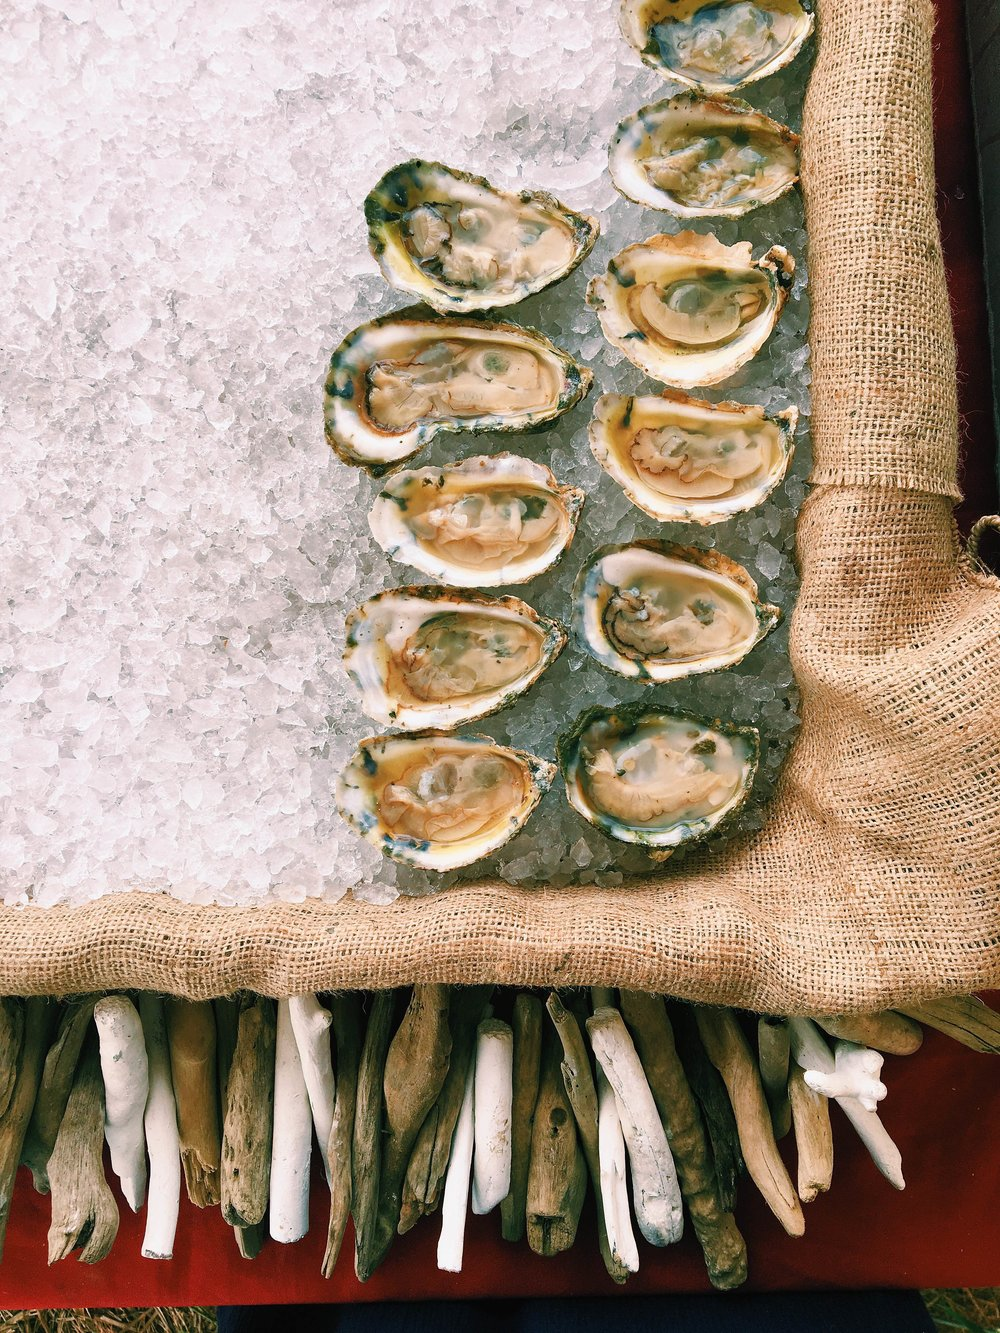 Huffington Post dabbled in the art of oyster farming. Meanwhile, we were polishing off these beauties at the Cavalier Produce open house last weekend!